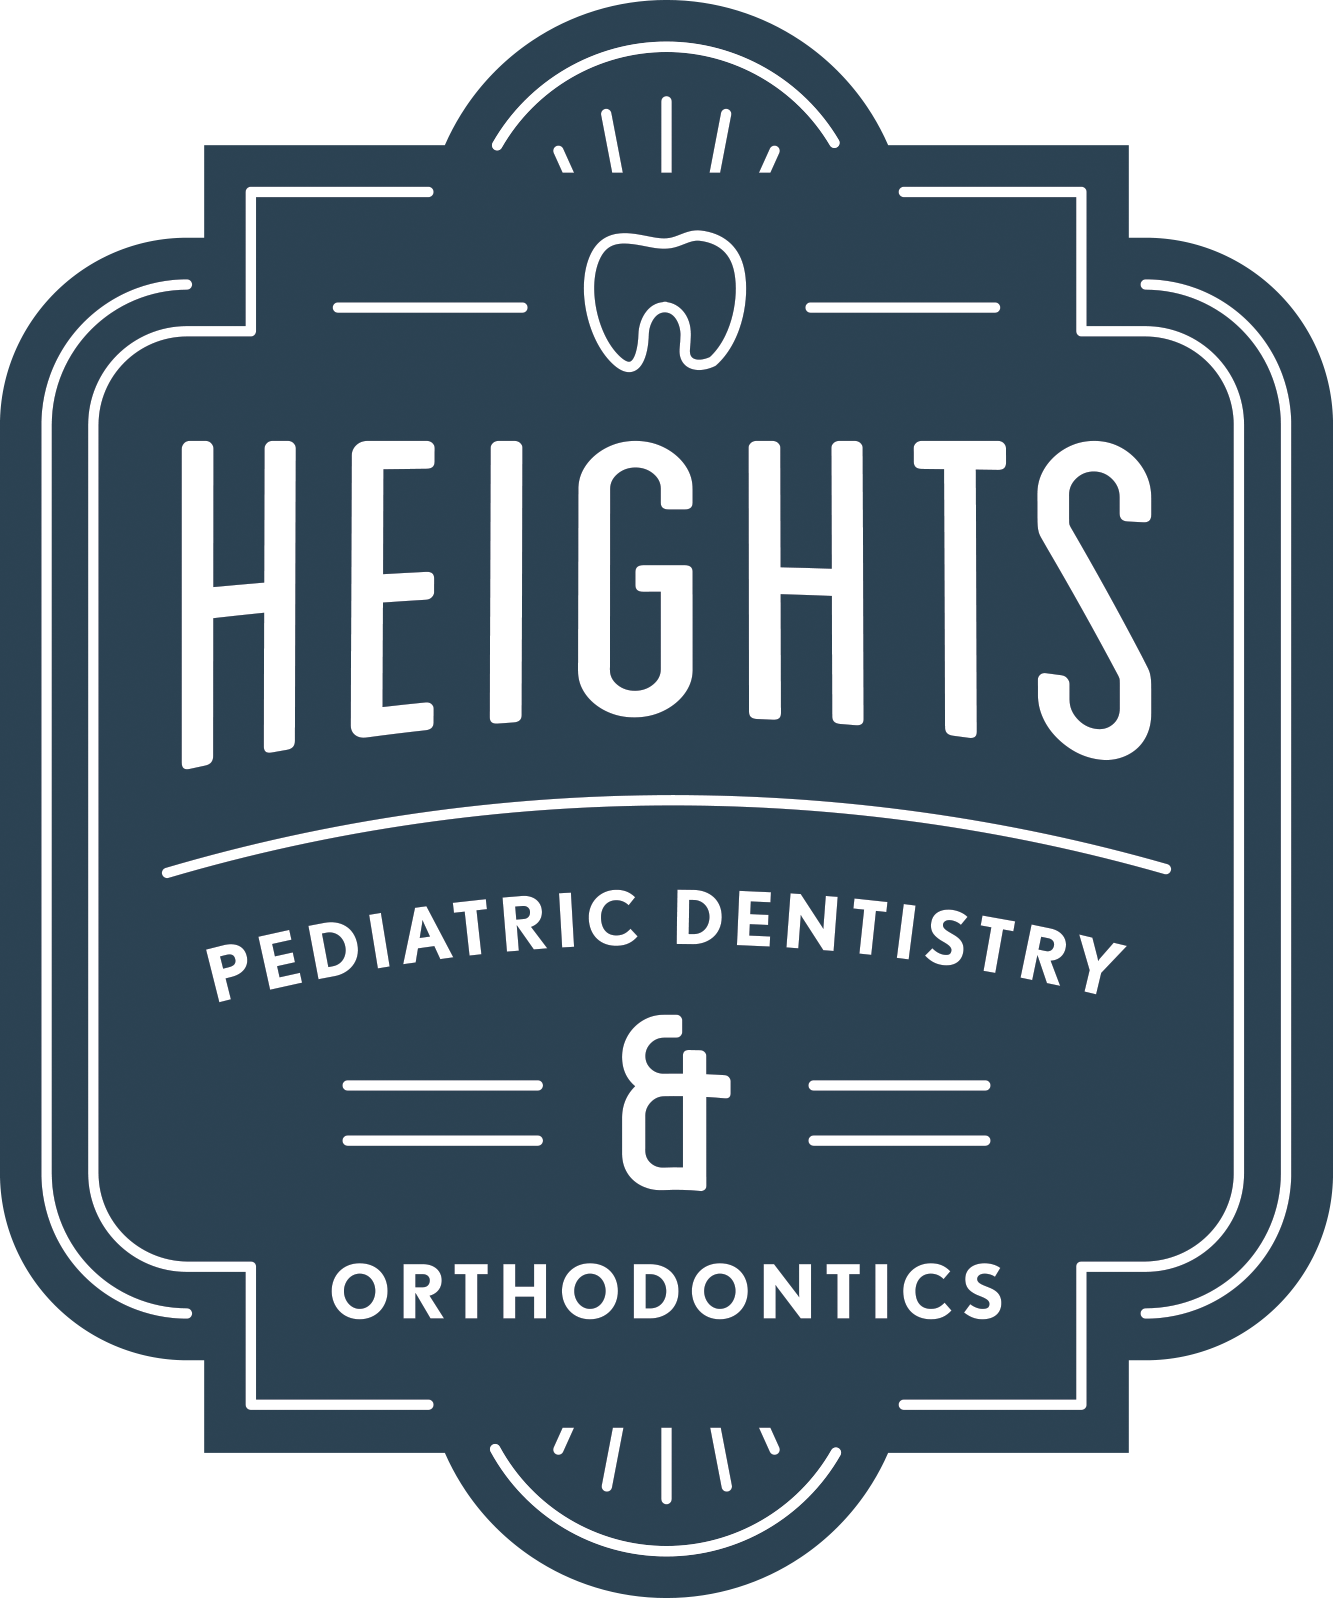 Heights Pediatric Dentistry & Orthodontics